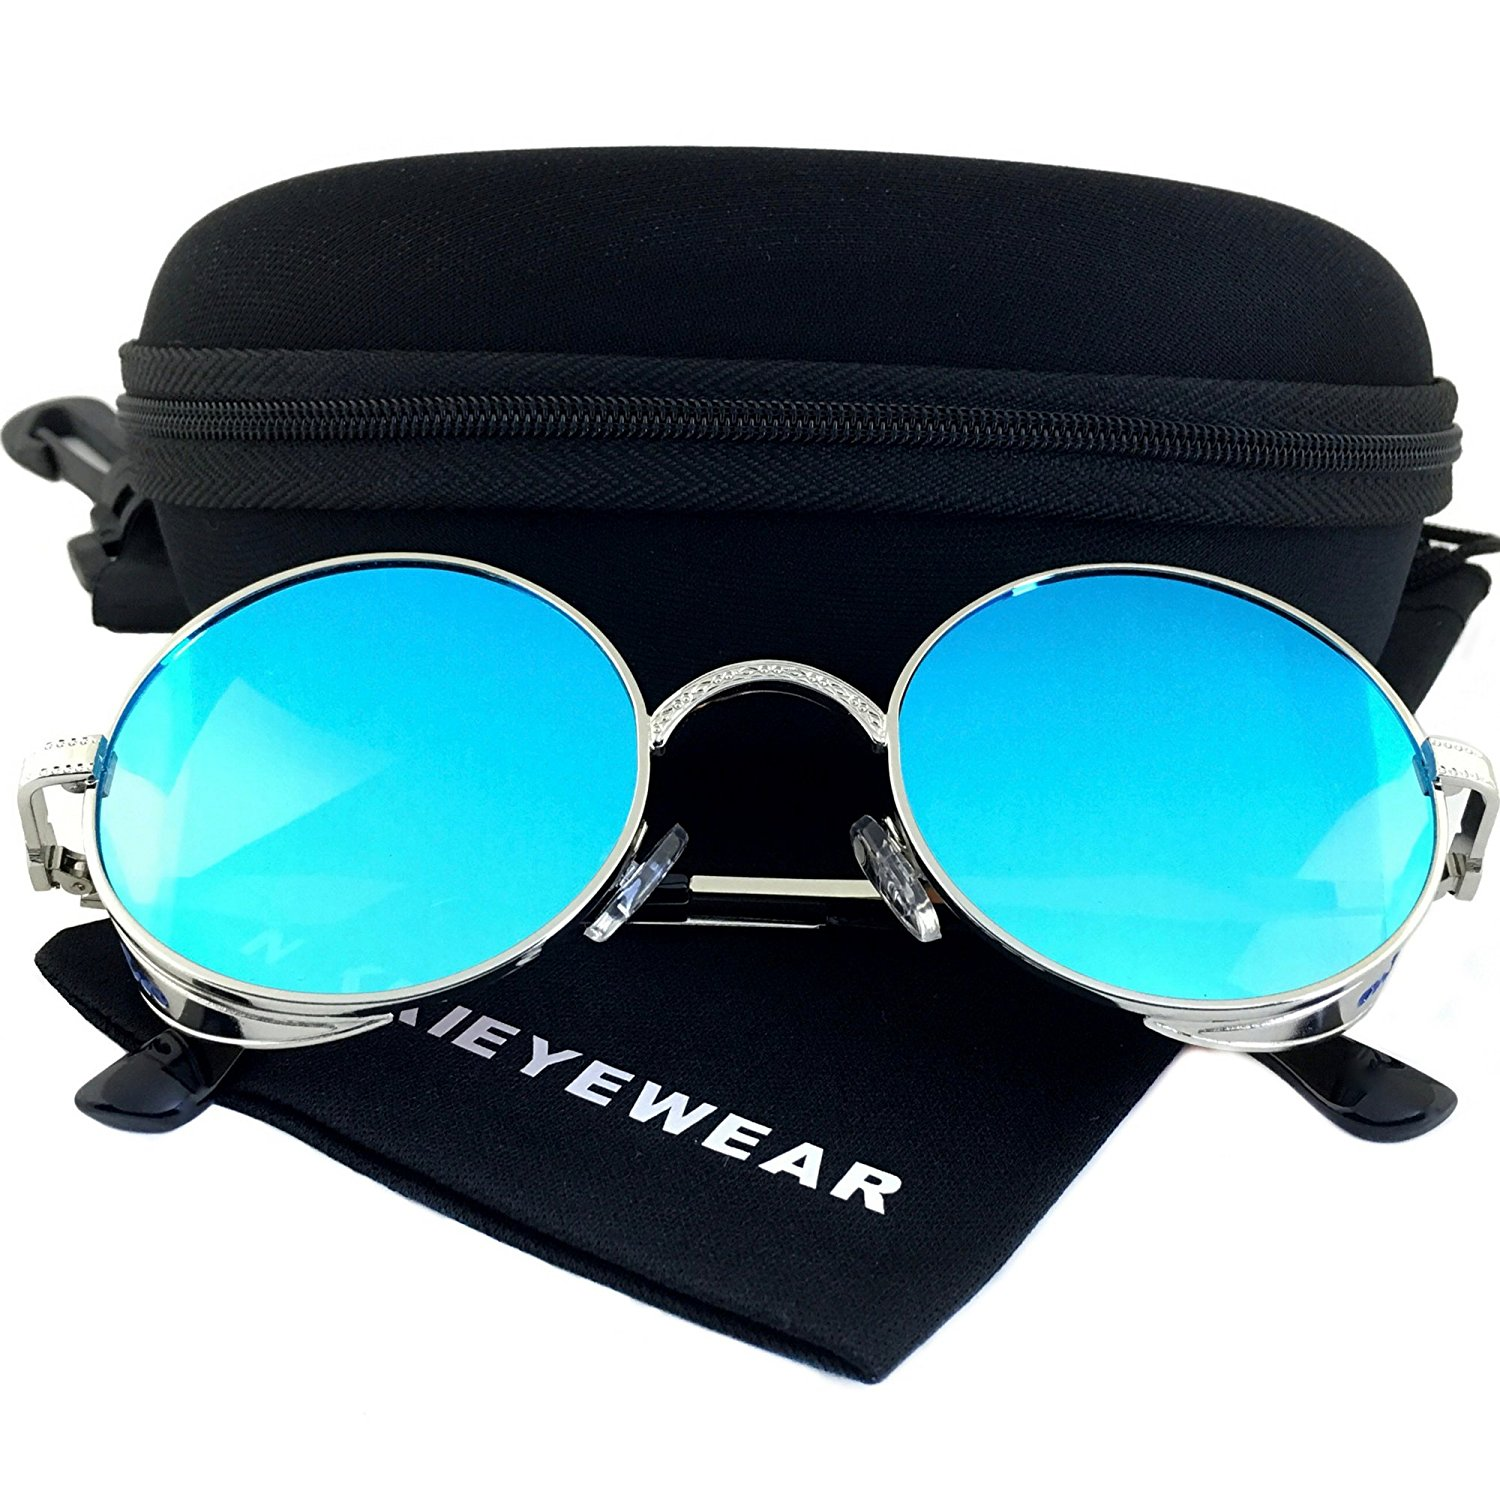 36c83e50e15 Get Quotations · NIKKIEYEWEAR - Gothic Steampunk Round Sunglasses Embossed  Side Shields